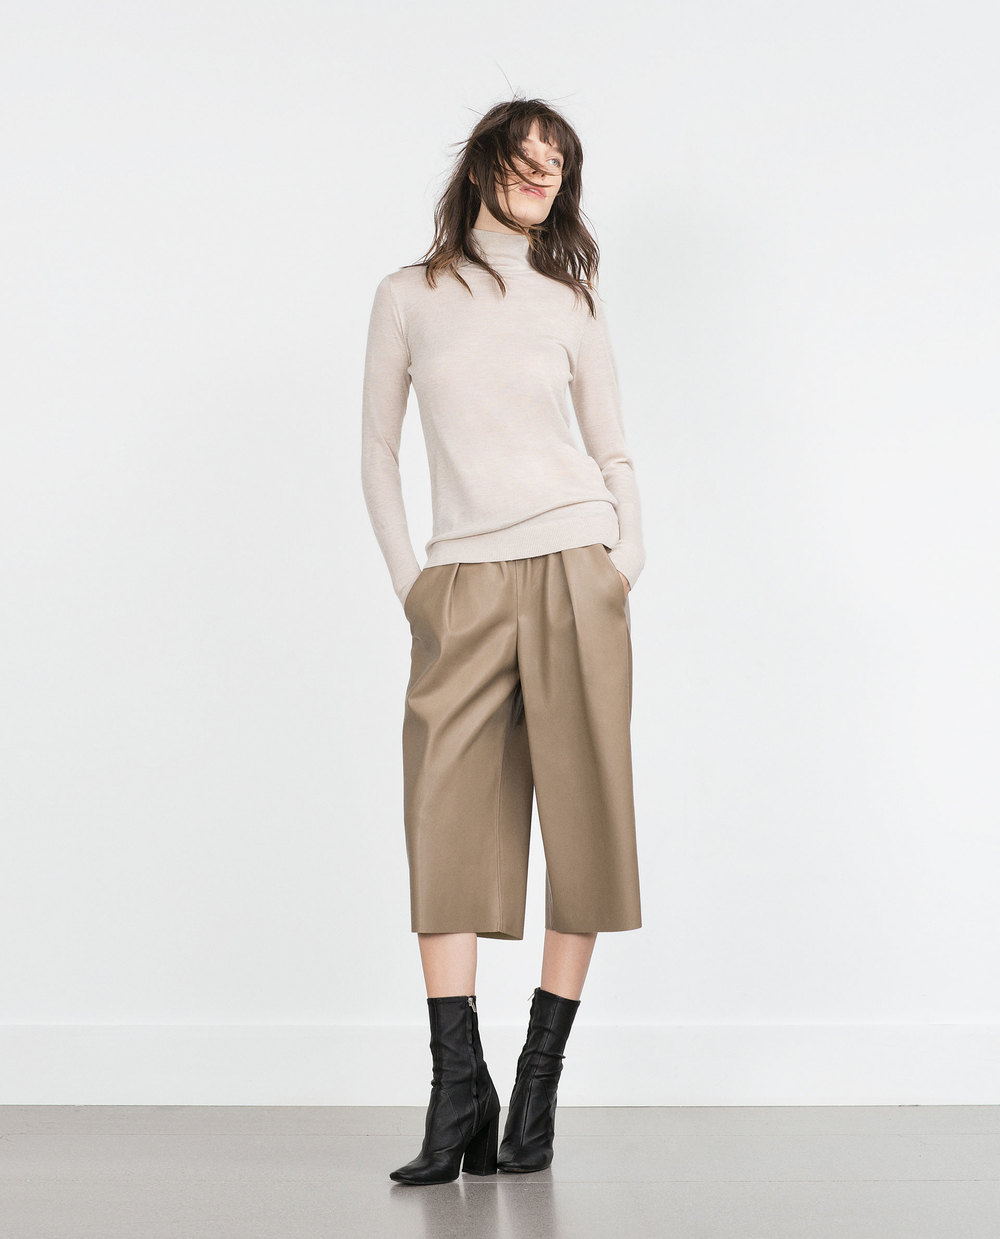 Faux Leather Culottes. Also available in black. Zara. $39.